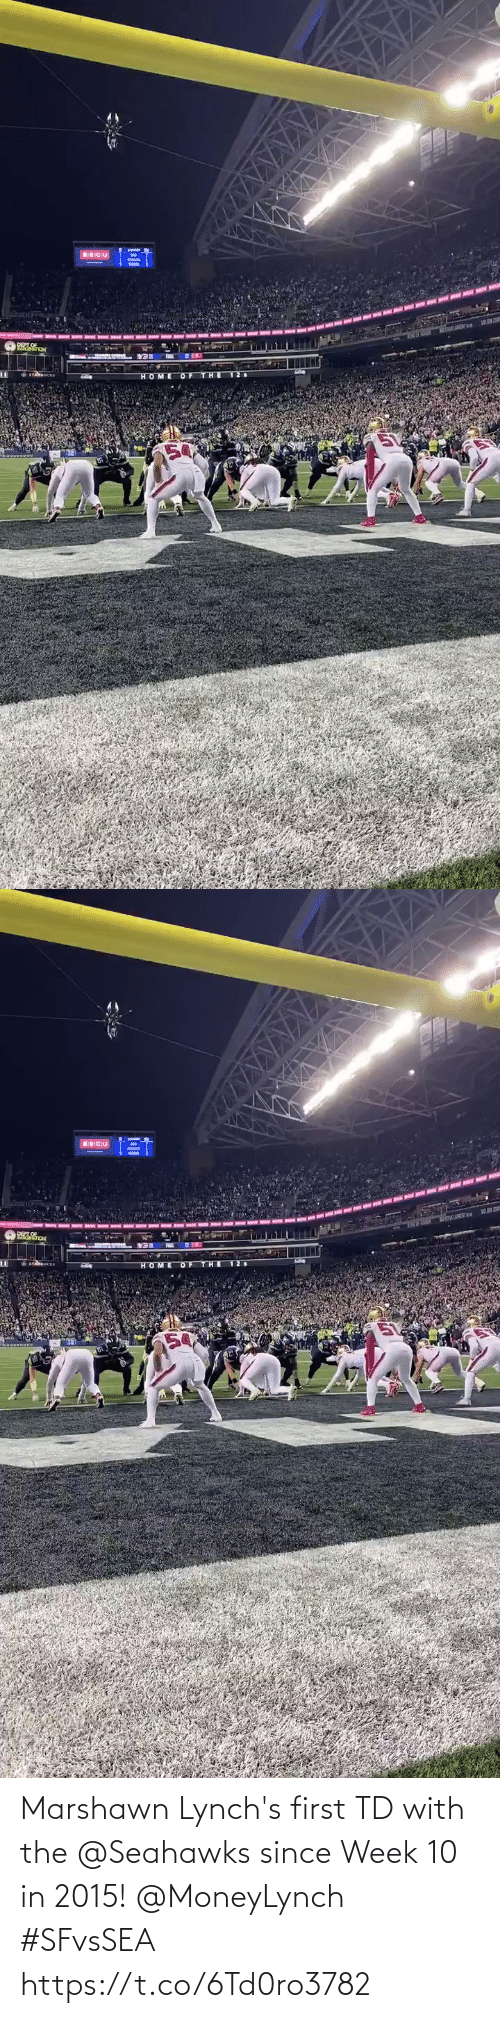 Seahawks: HOME OETHE   10  HOME O F THE 12  50 Marshawn Lynch's first TD with the @Seahawks since Week 10 in 2015! @MoneyLynch #SFvsSEA https://t.co/6Td0ro3782